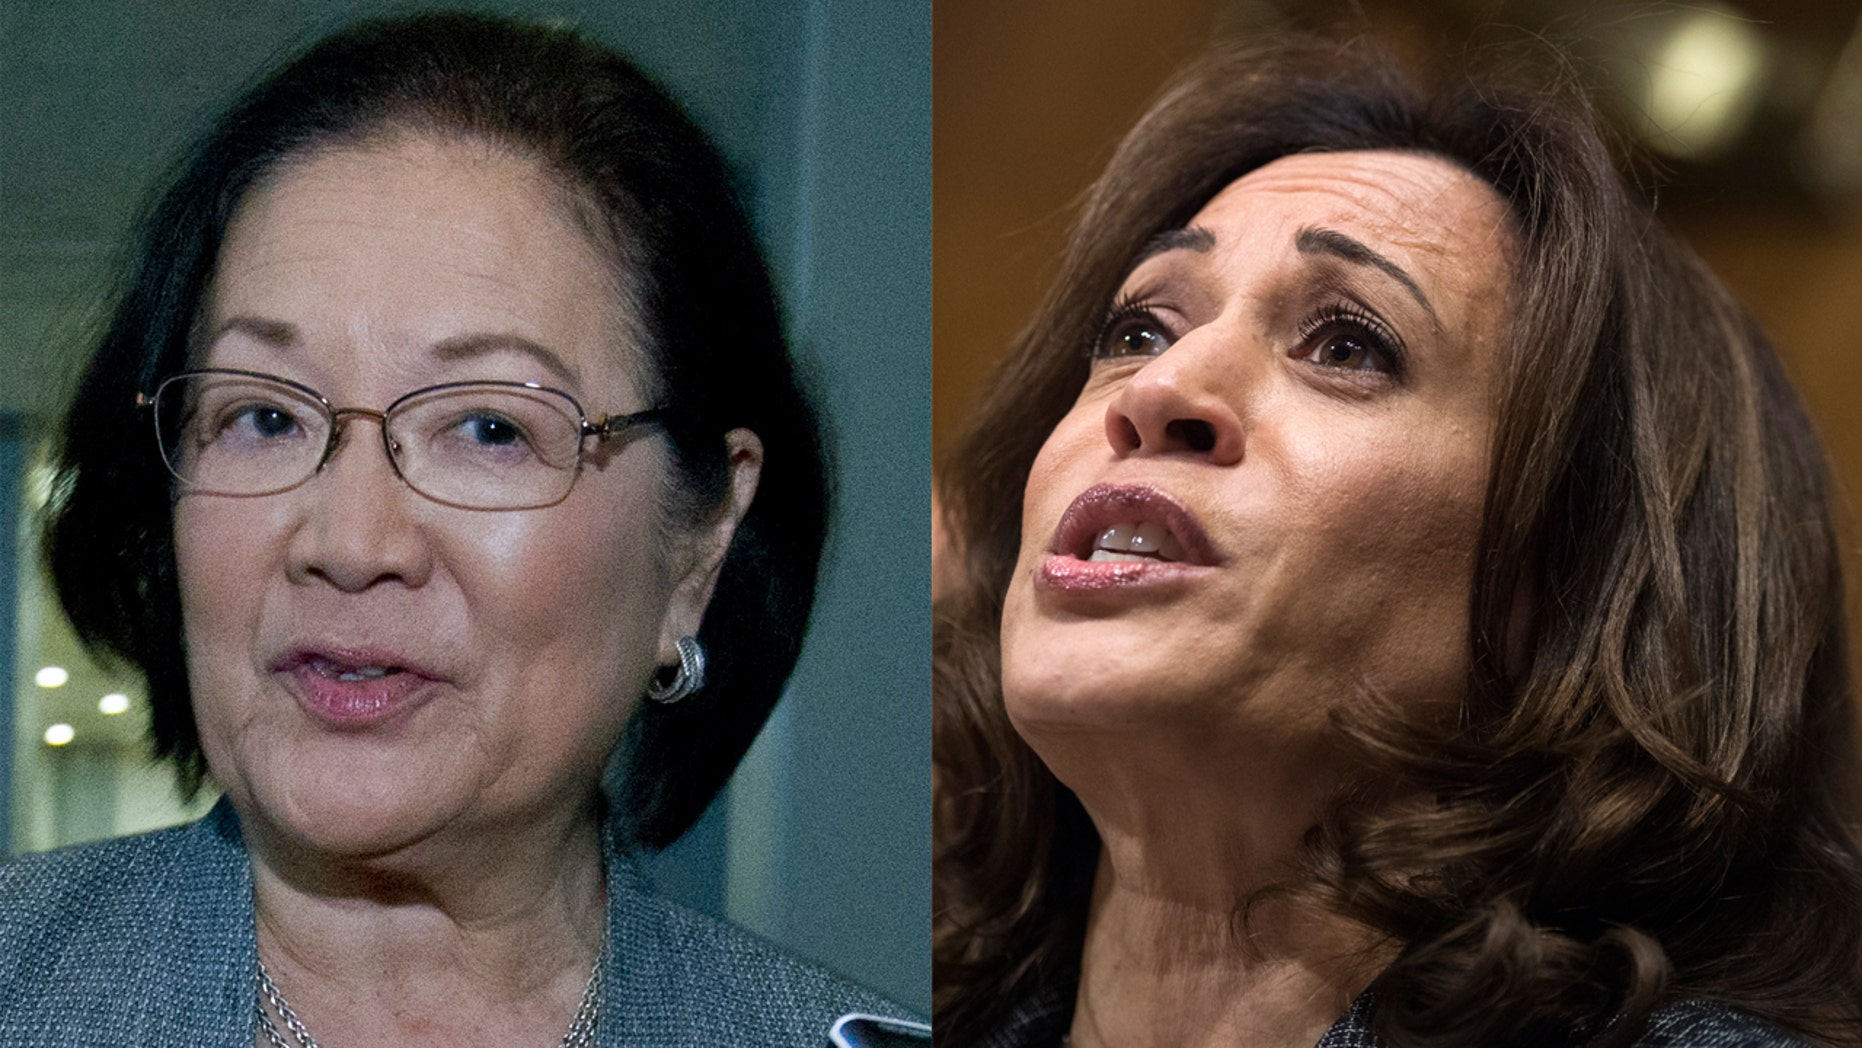 Sens. Kamala Harris, D-Calif., and Mazie Hirono, D-Hawaii, raised concerns about court nominee Brian Buescher's membership in the Knights of Columbus.